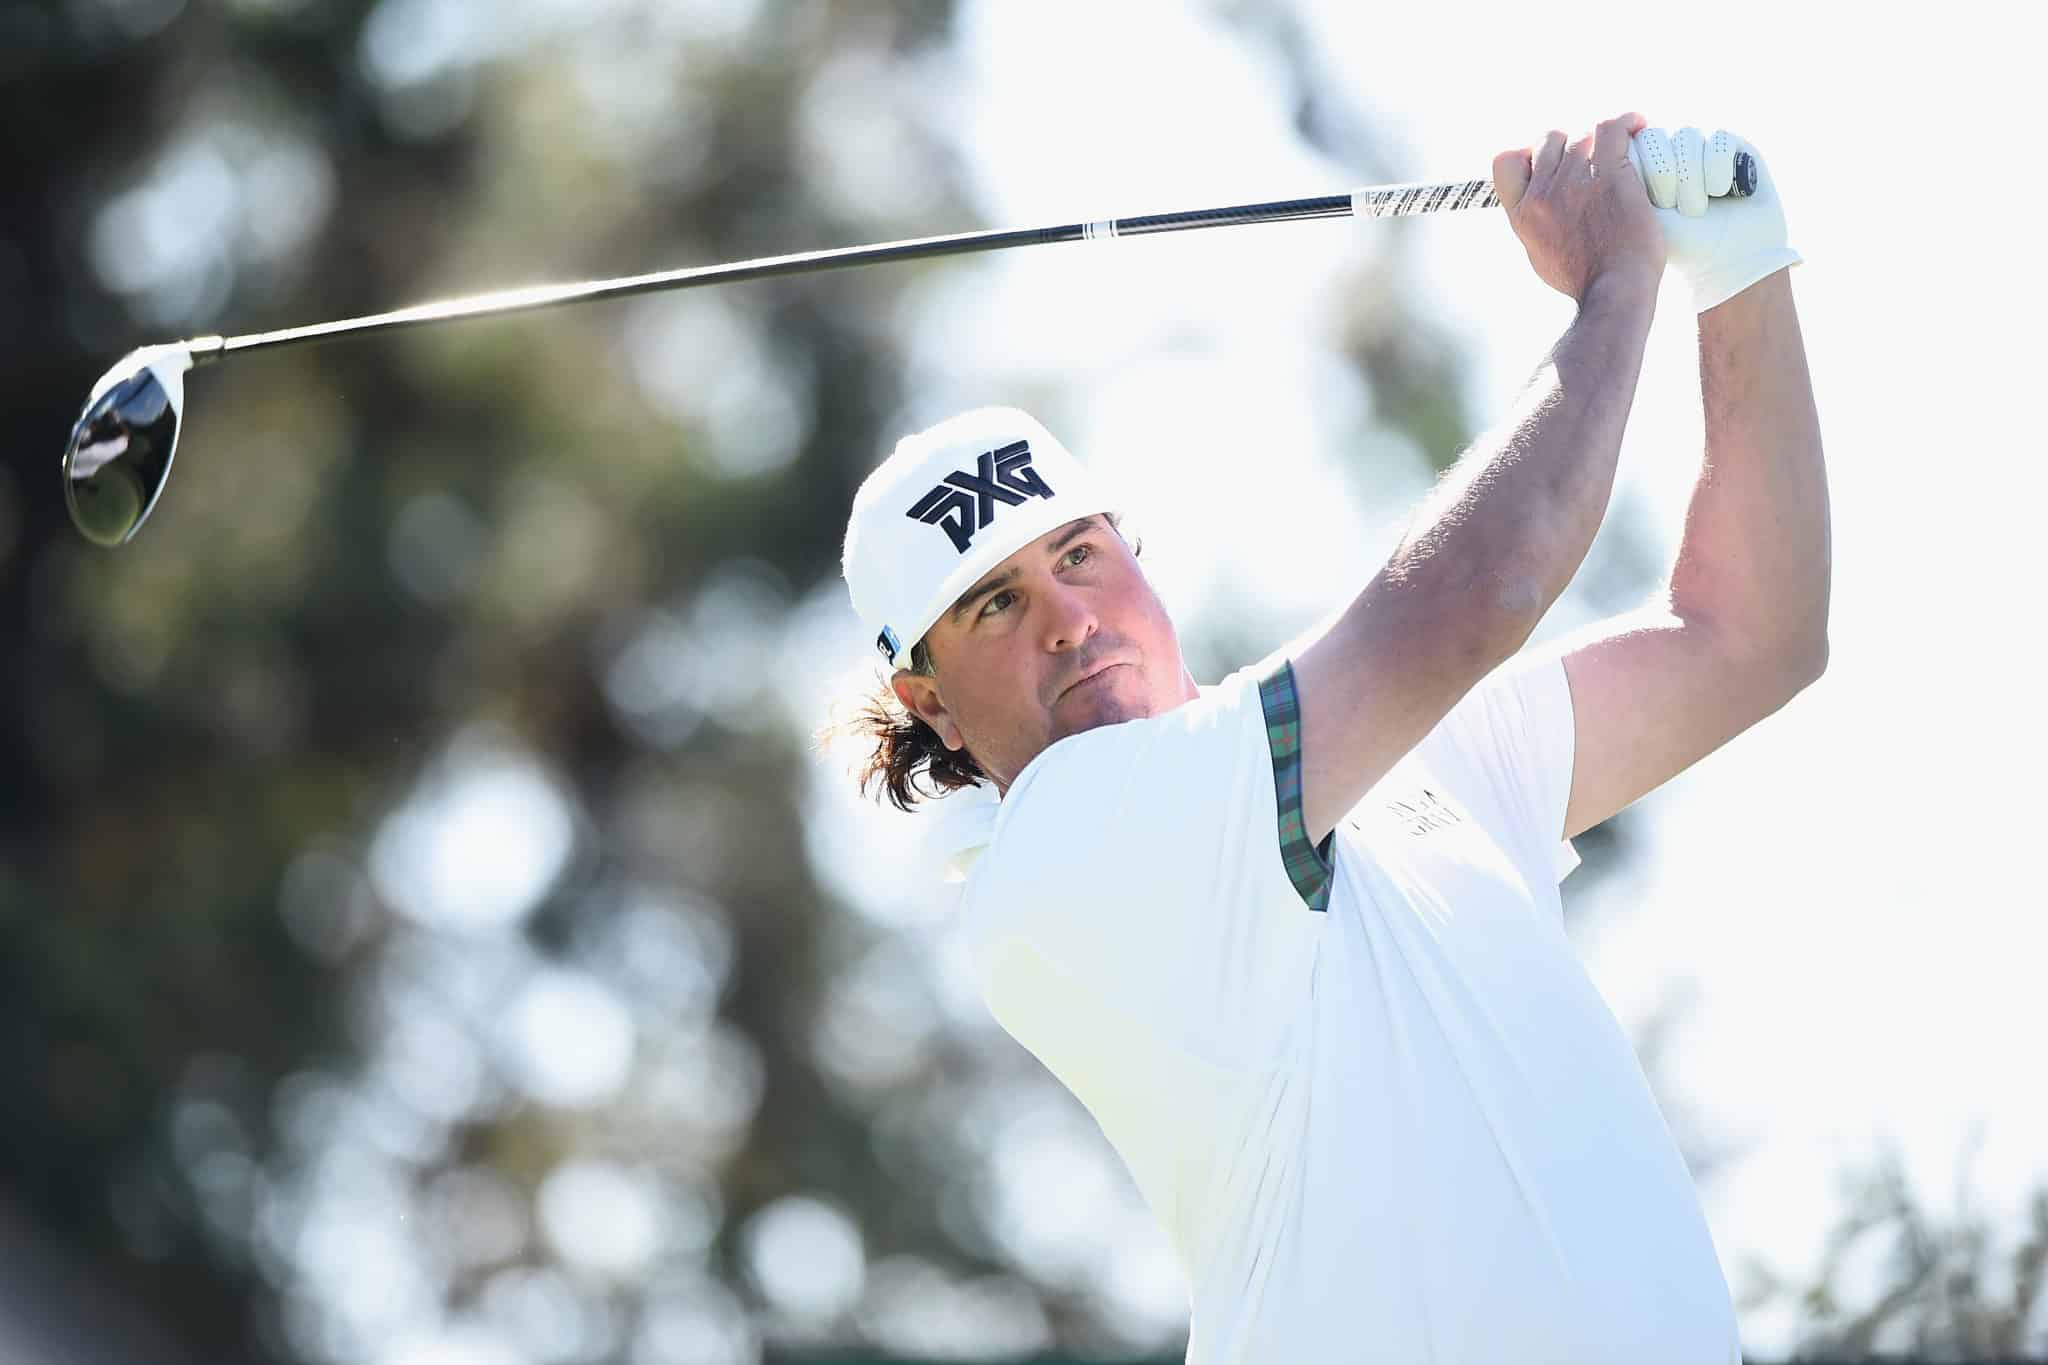 Pat Perez The Pxg Ambassador On Outdriving John Daly As